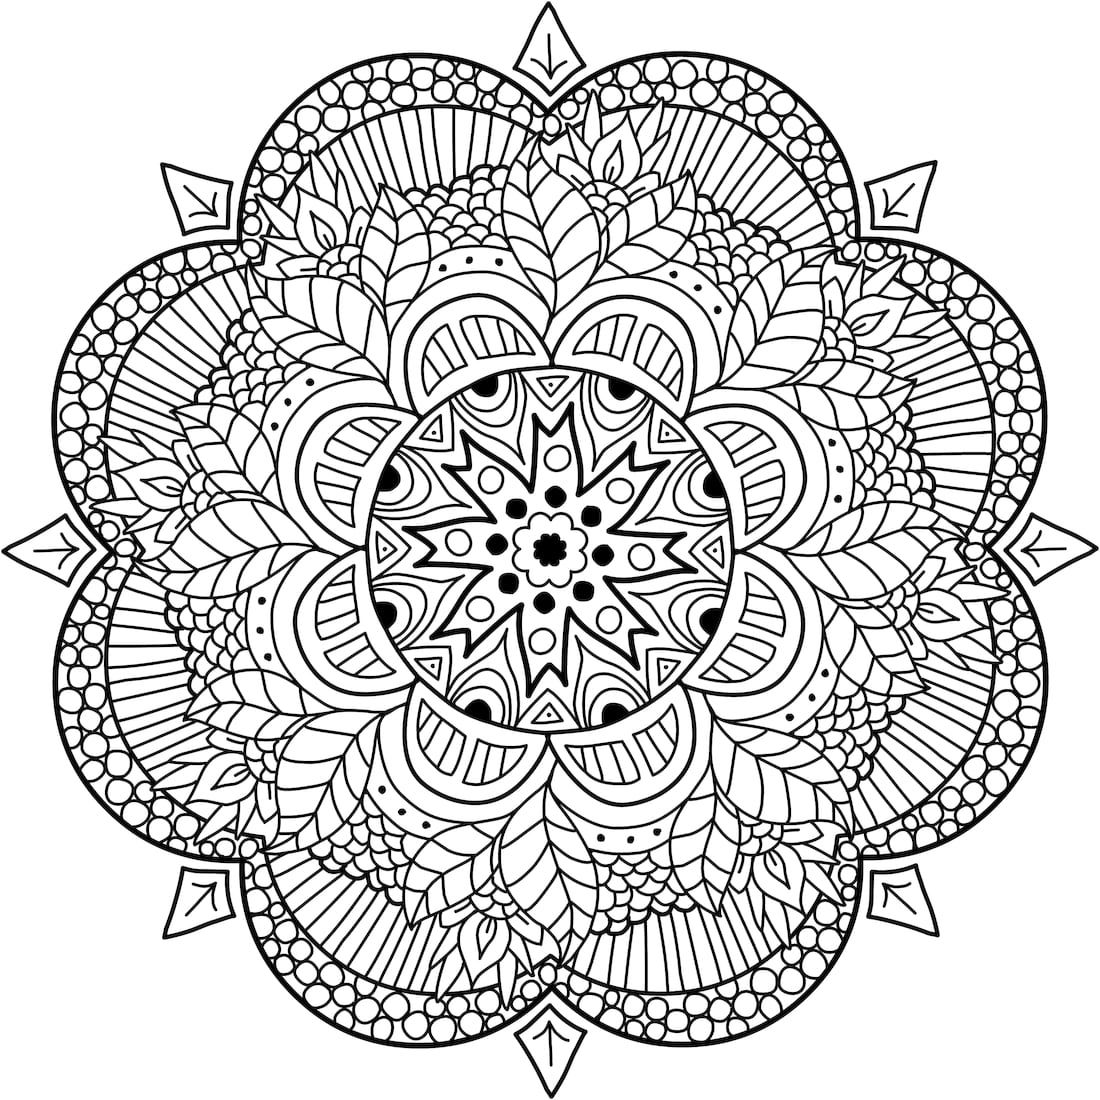 Pin by careyanne yager on coloring pages pinterest coloriage coloriage adulte and colorier - Mandala adulte ...